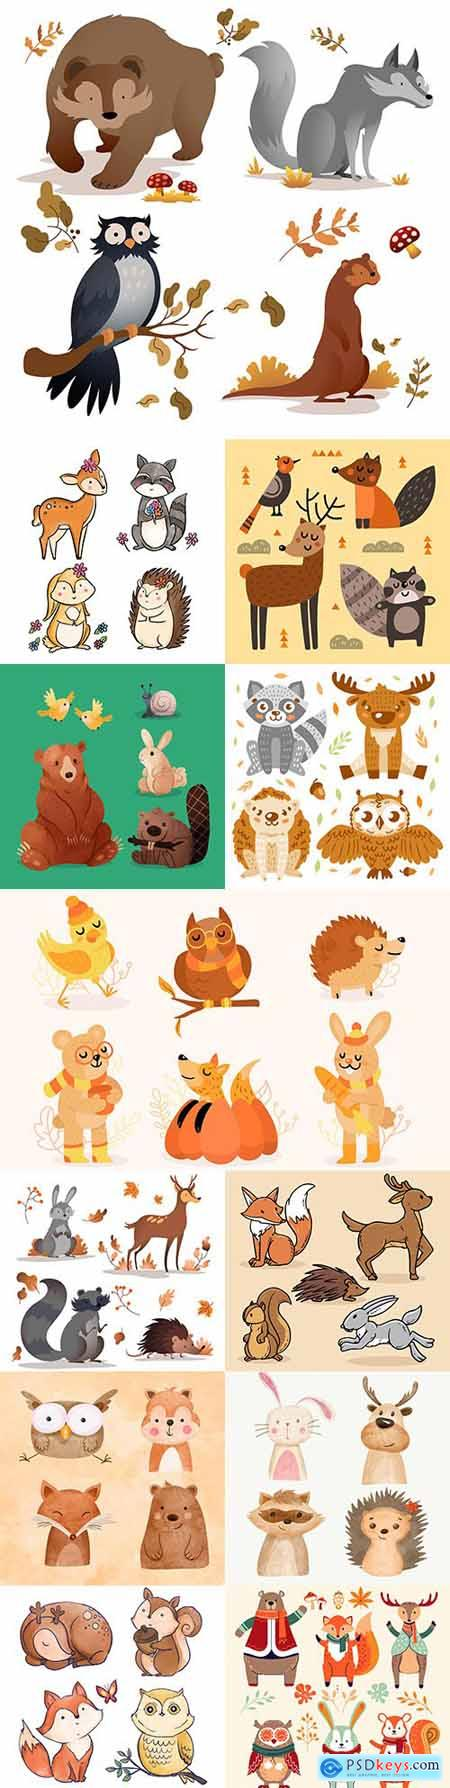 Autumn forest animals painted illustrations collection